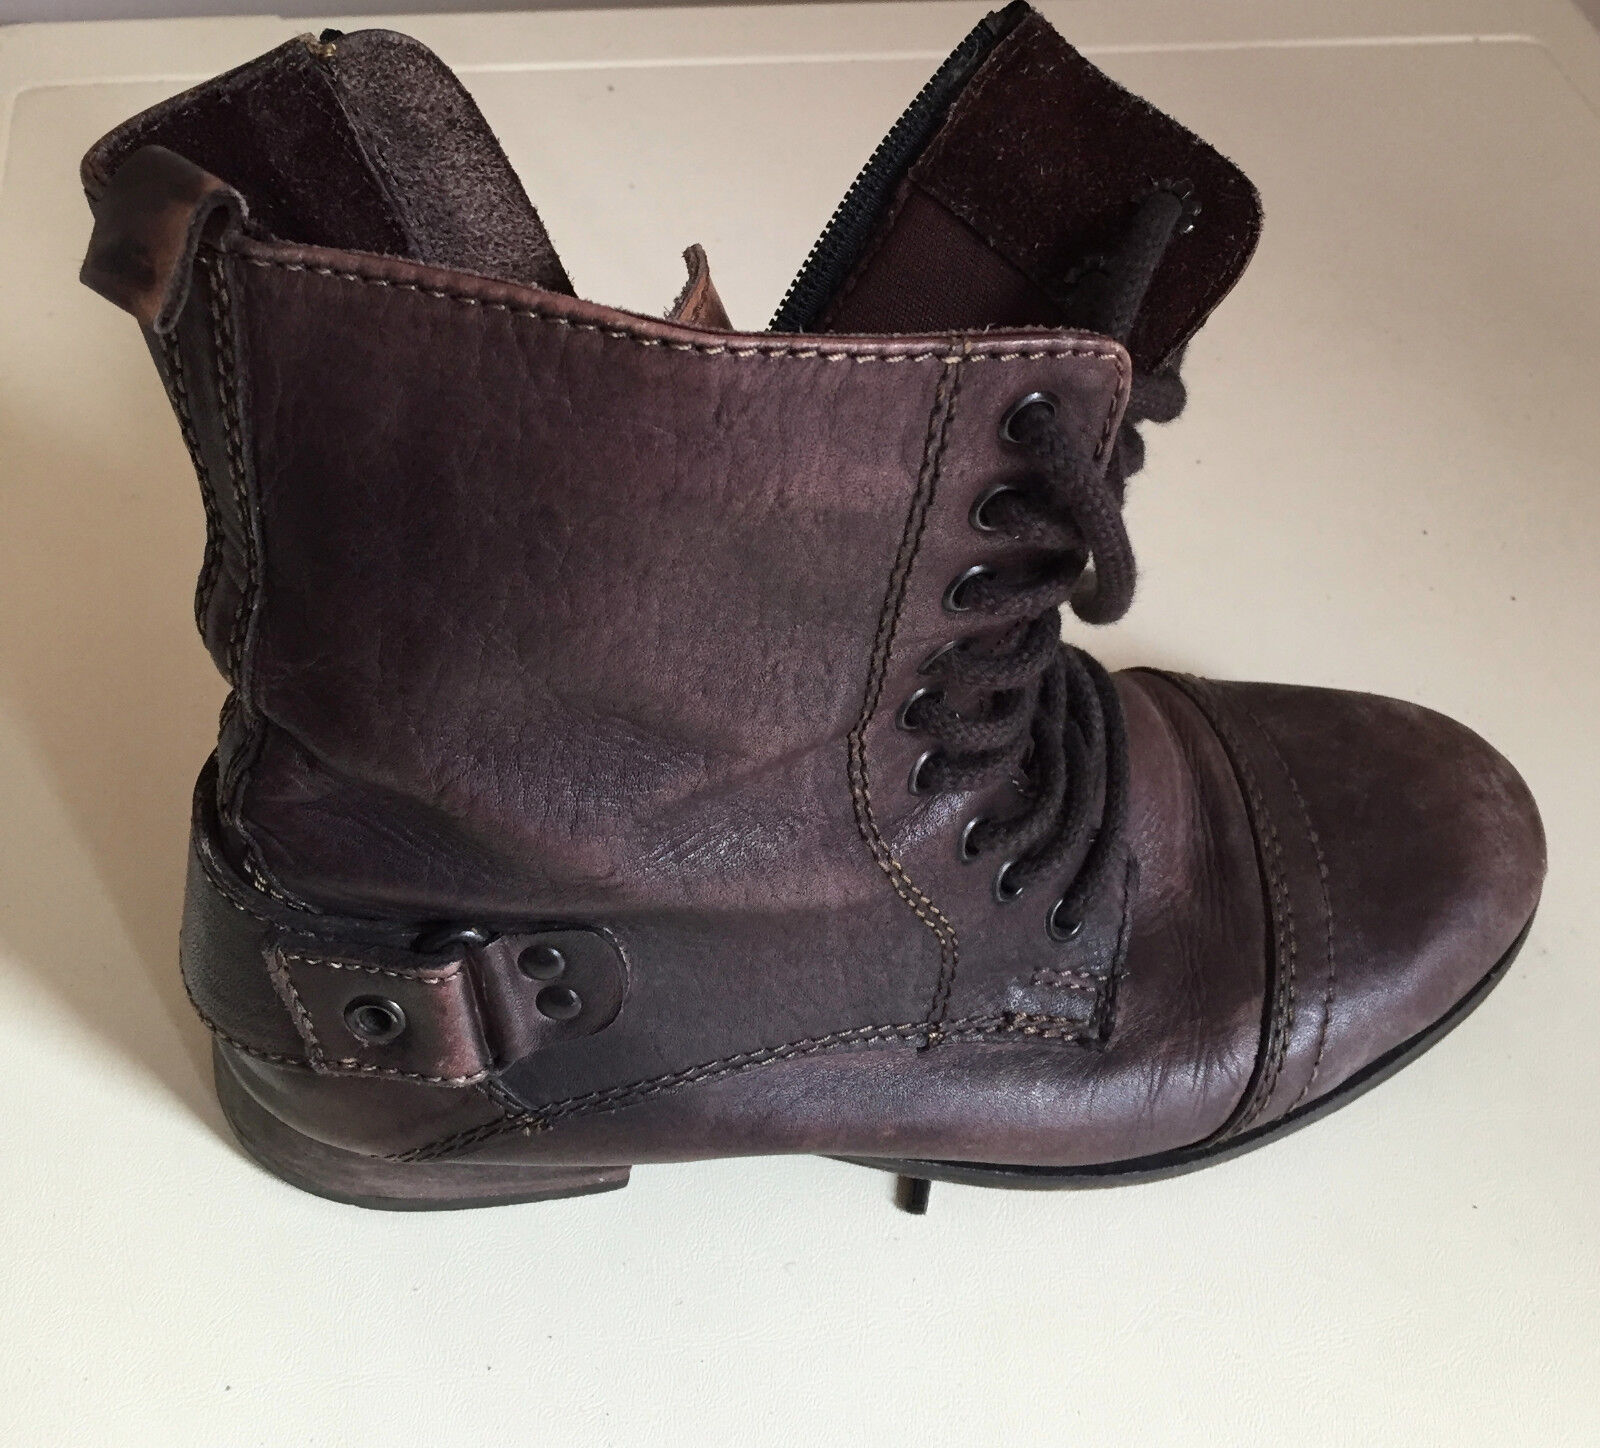 WOMEN RIVERISLAND BROWN ANKLE LEATHER 38 BOOTS SIZE 38 LEATHER b38b8b